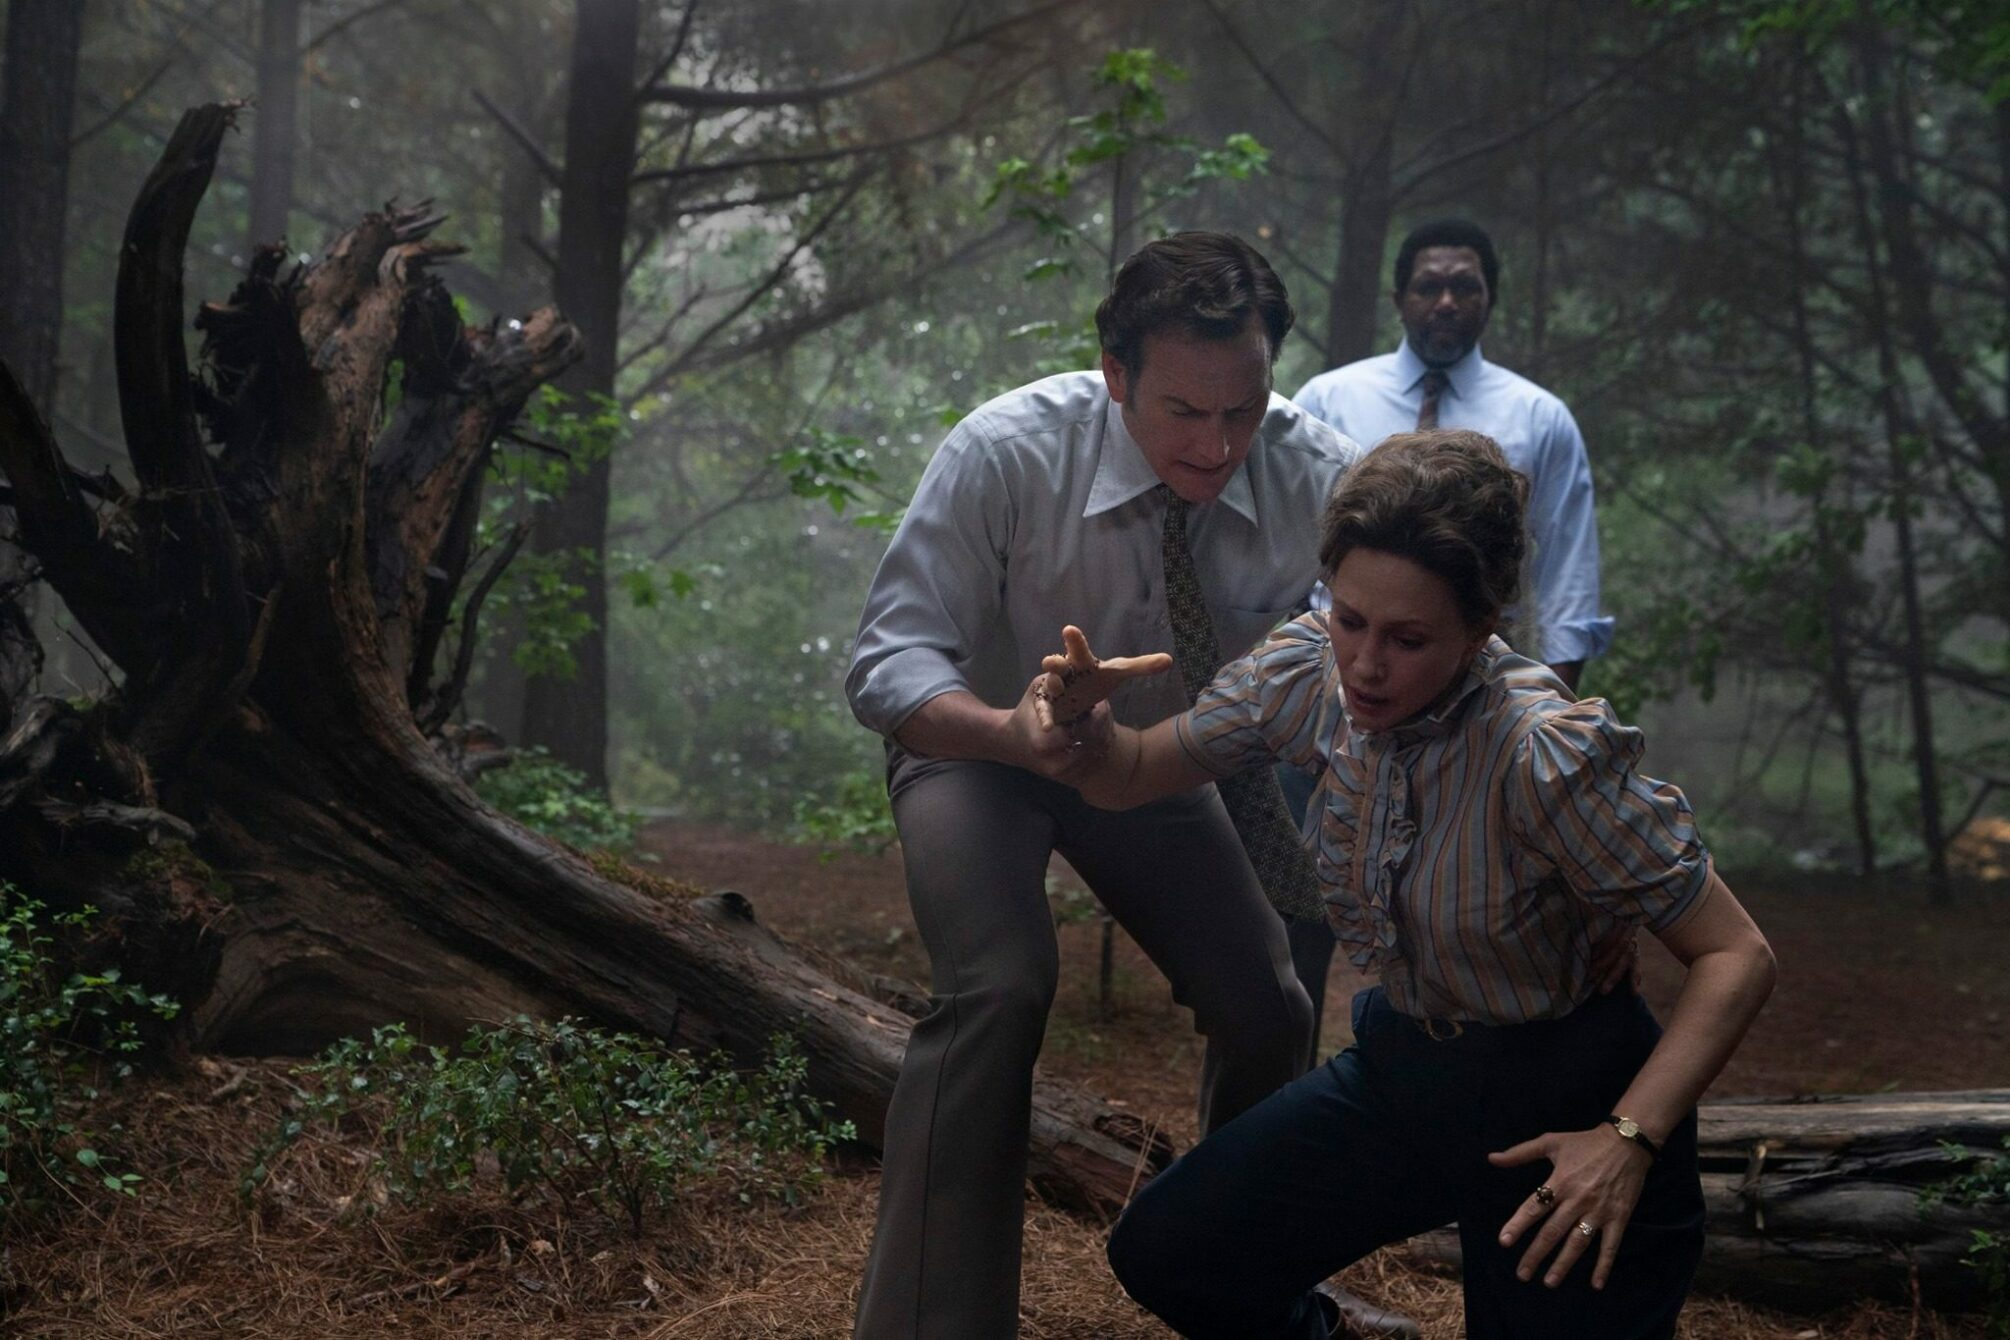 New images from The Conjuring: The Devil Made Me Do It